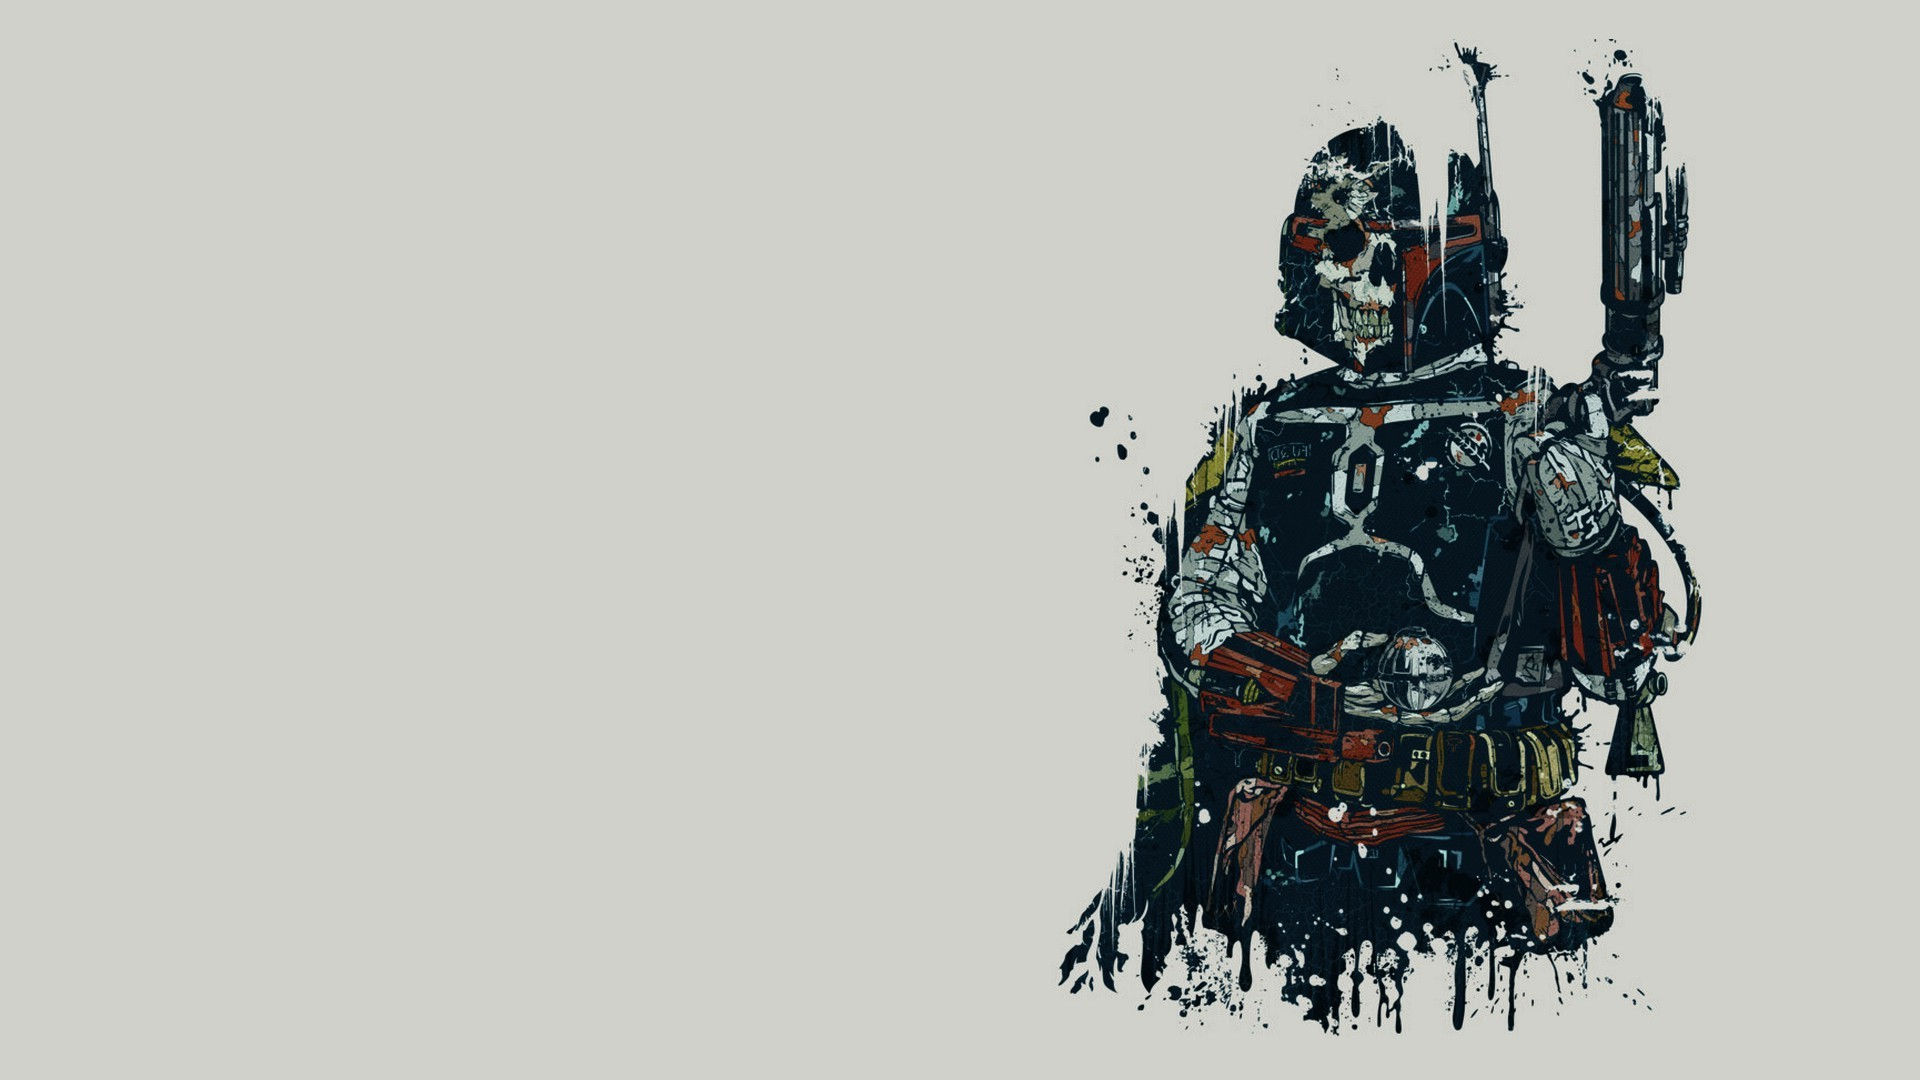 Star Wars Boba Fett Desktop Wallpaper Pictures to pin on 1920x1080